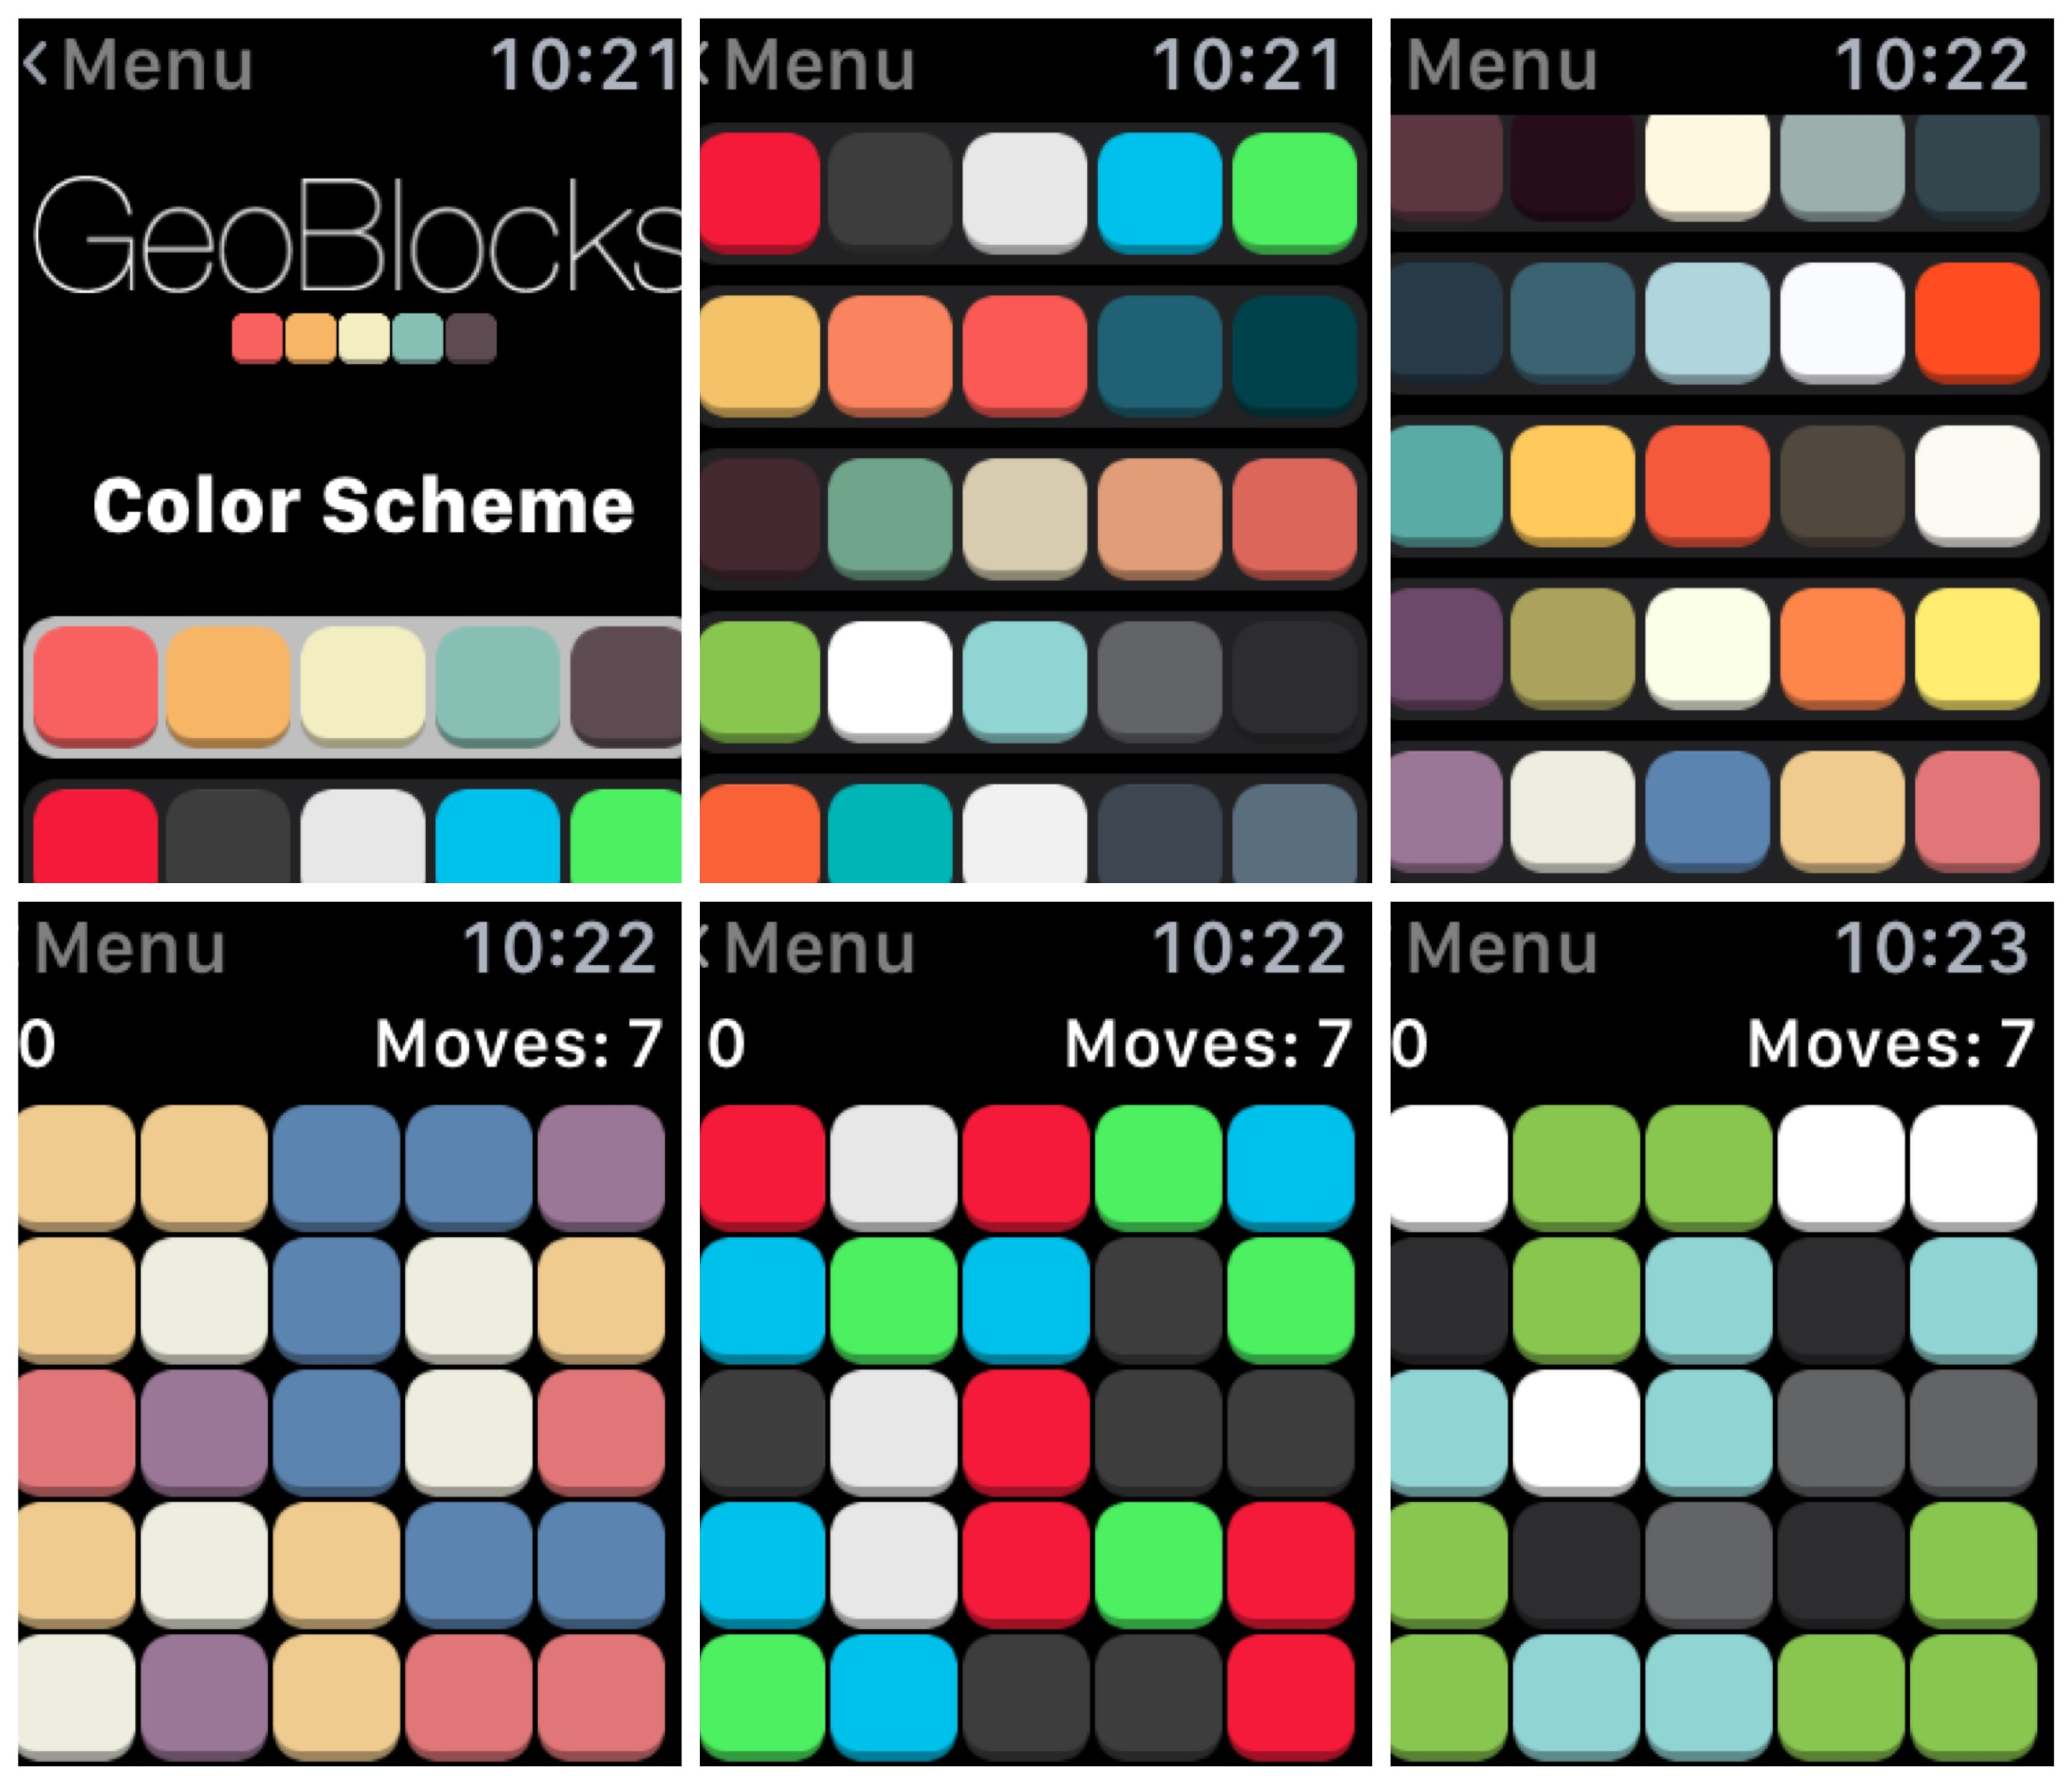 GeoBlocks Is a Simple, Appealing Game on the Apple Watch | Watchaware